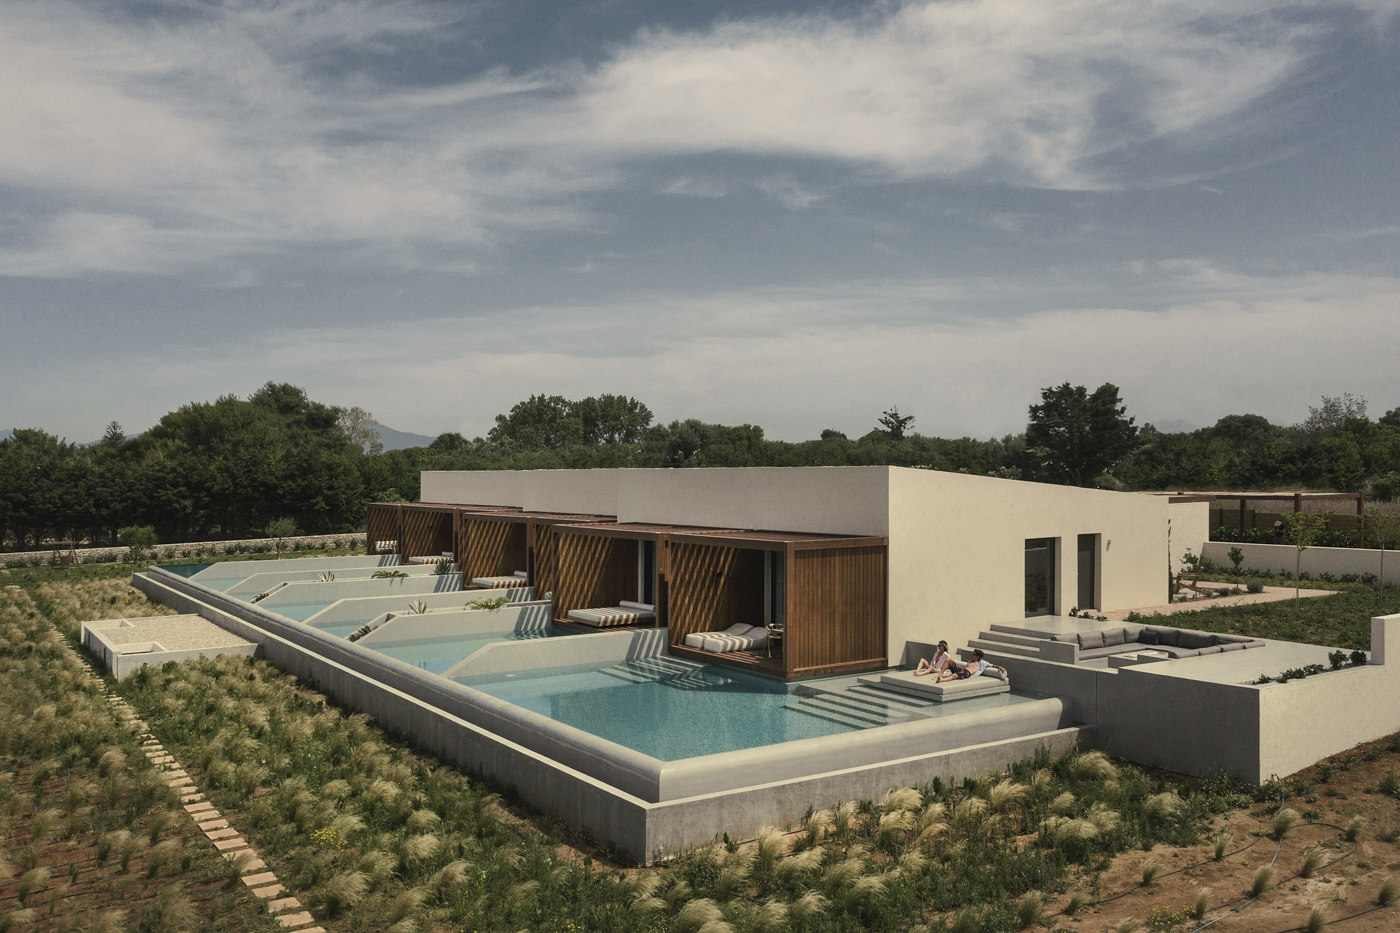 Meraviglia Slow Living - The First Slow Living Concept Design Hotel